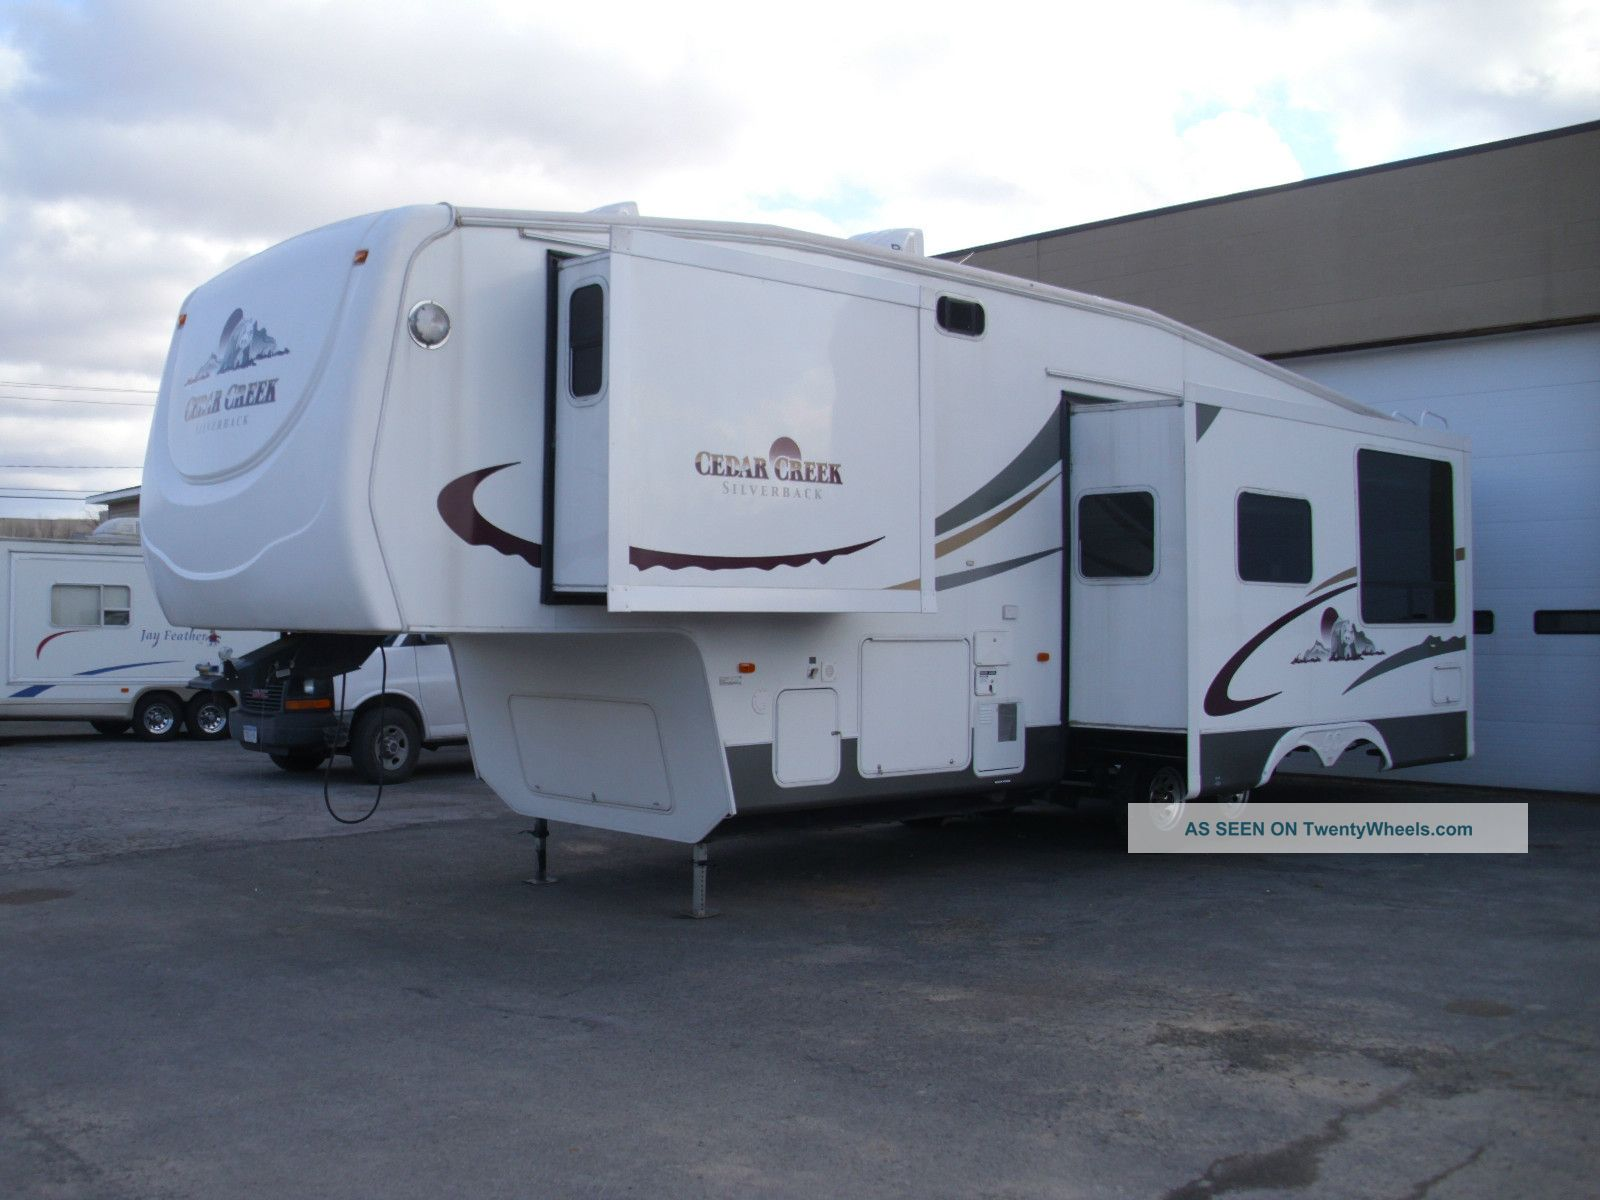 2006 Forest River - Cedar Creek 33lbhts Silverback Fifth Wheel RVs photo